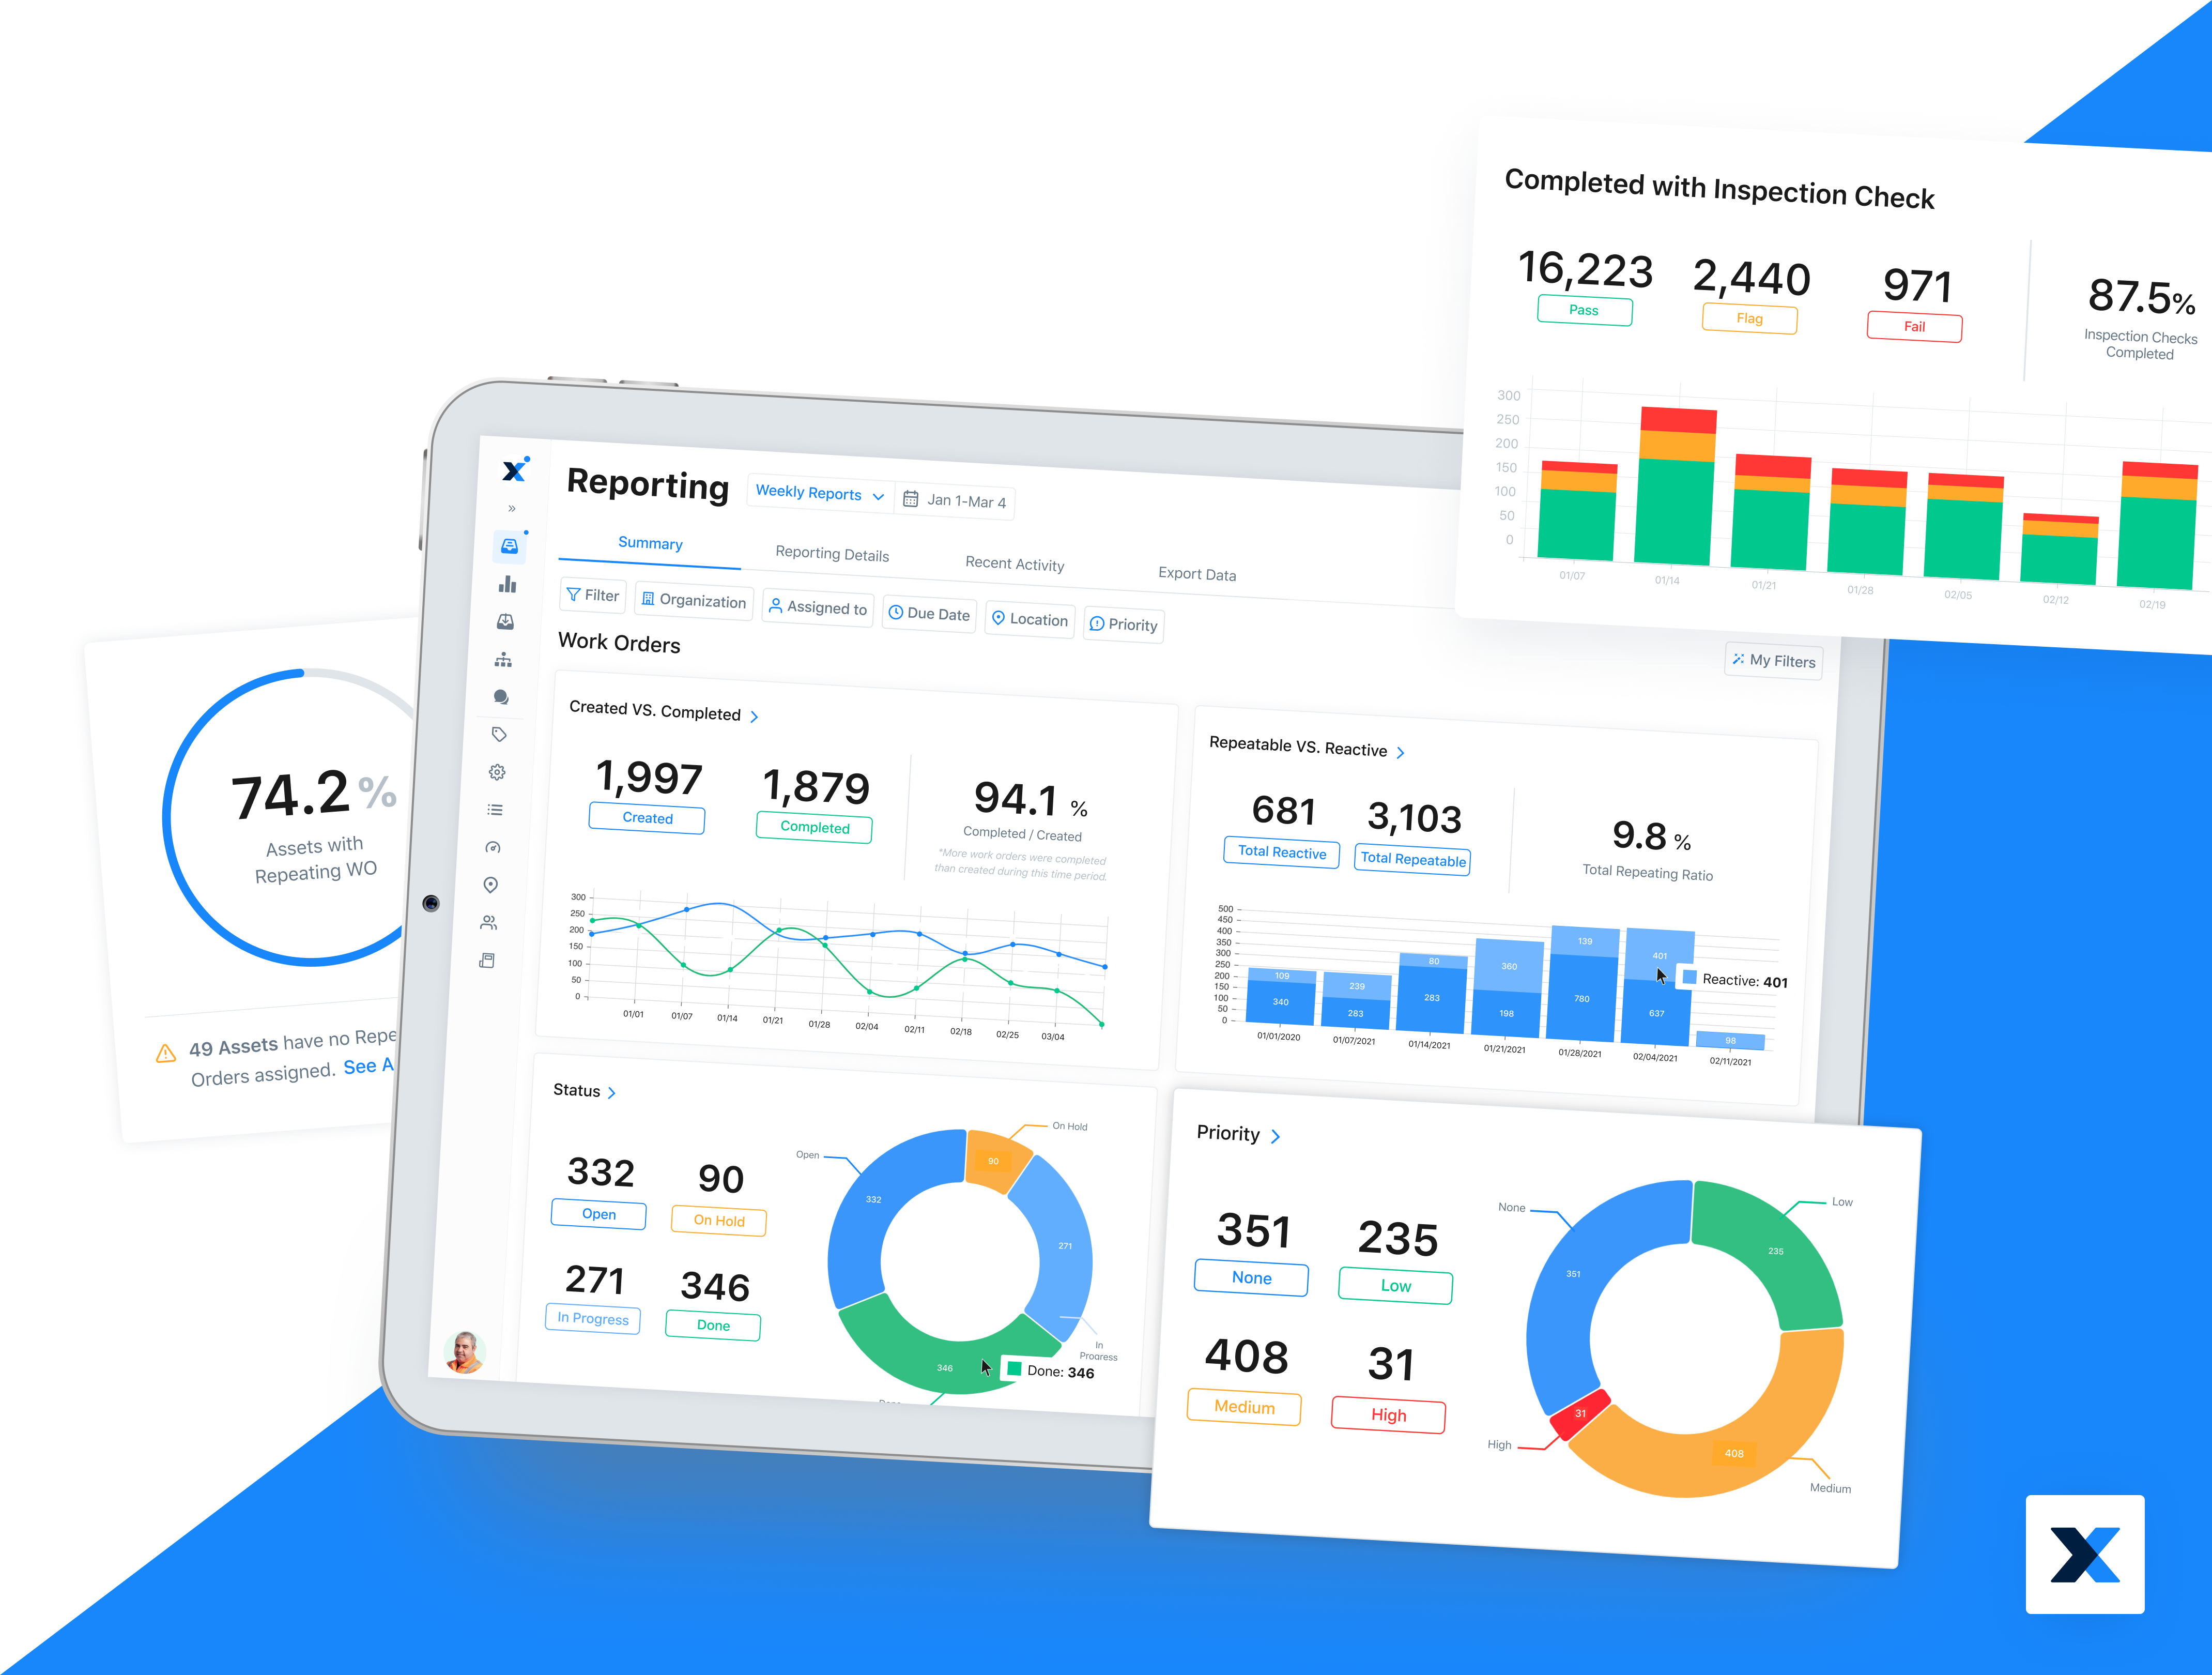 MaintainX Software - Real-Time Business Insights Across Your Organization